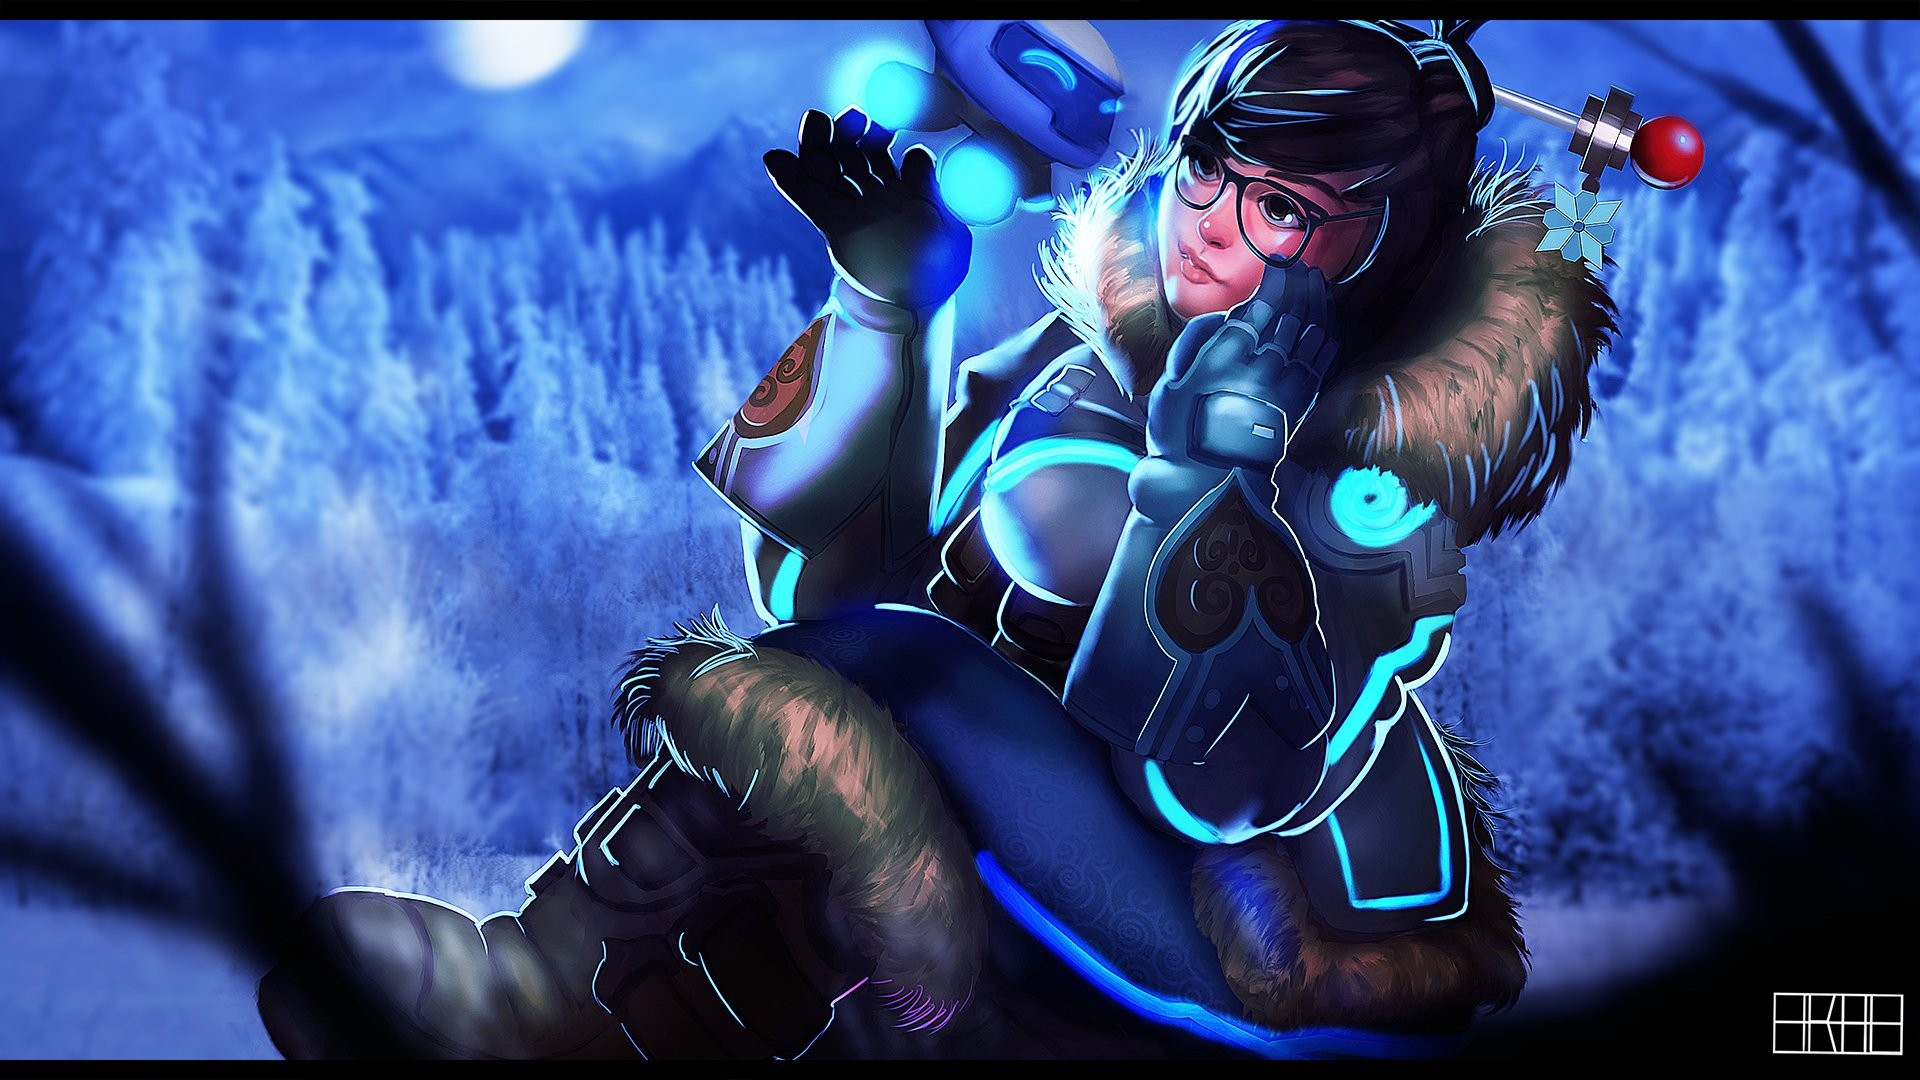 Overwatch Mei wallpaper ·① Download free wallpapers for ...